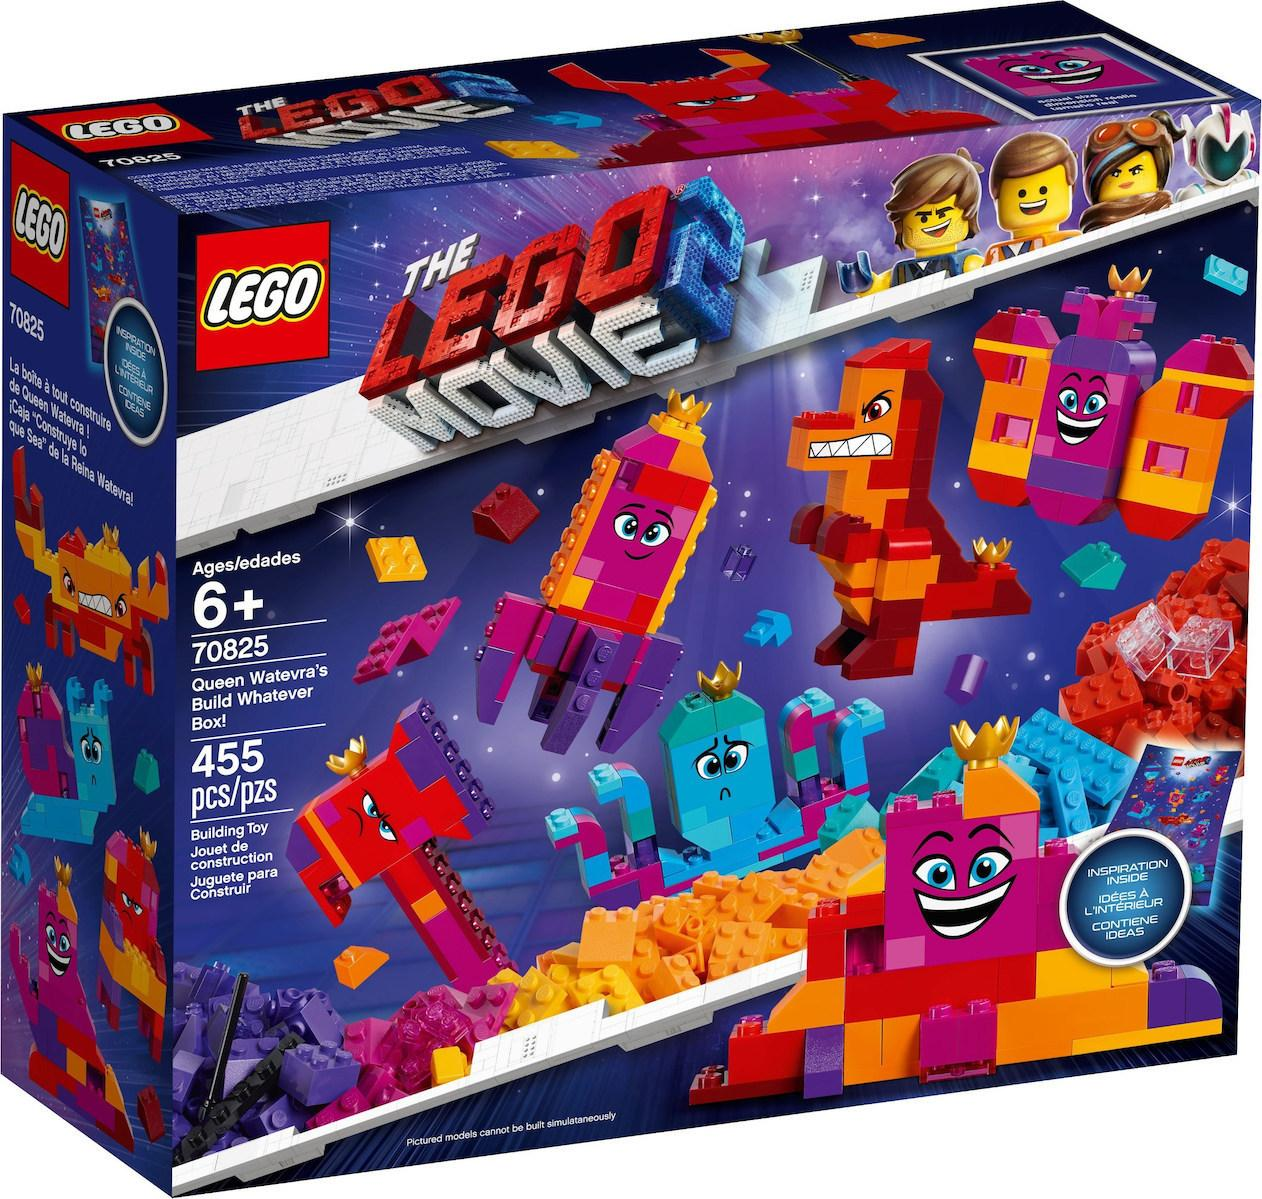 Lego Movie 2 Queen Watevra's Build Whatever Box! (70825)